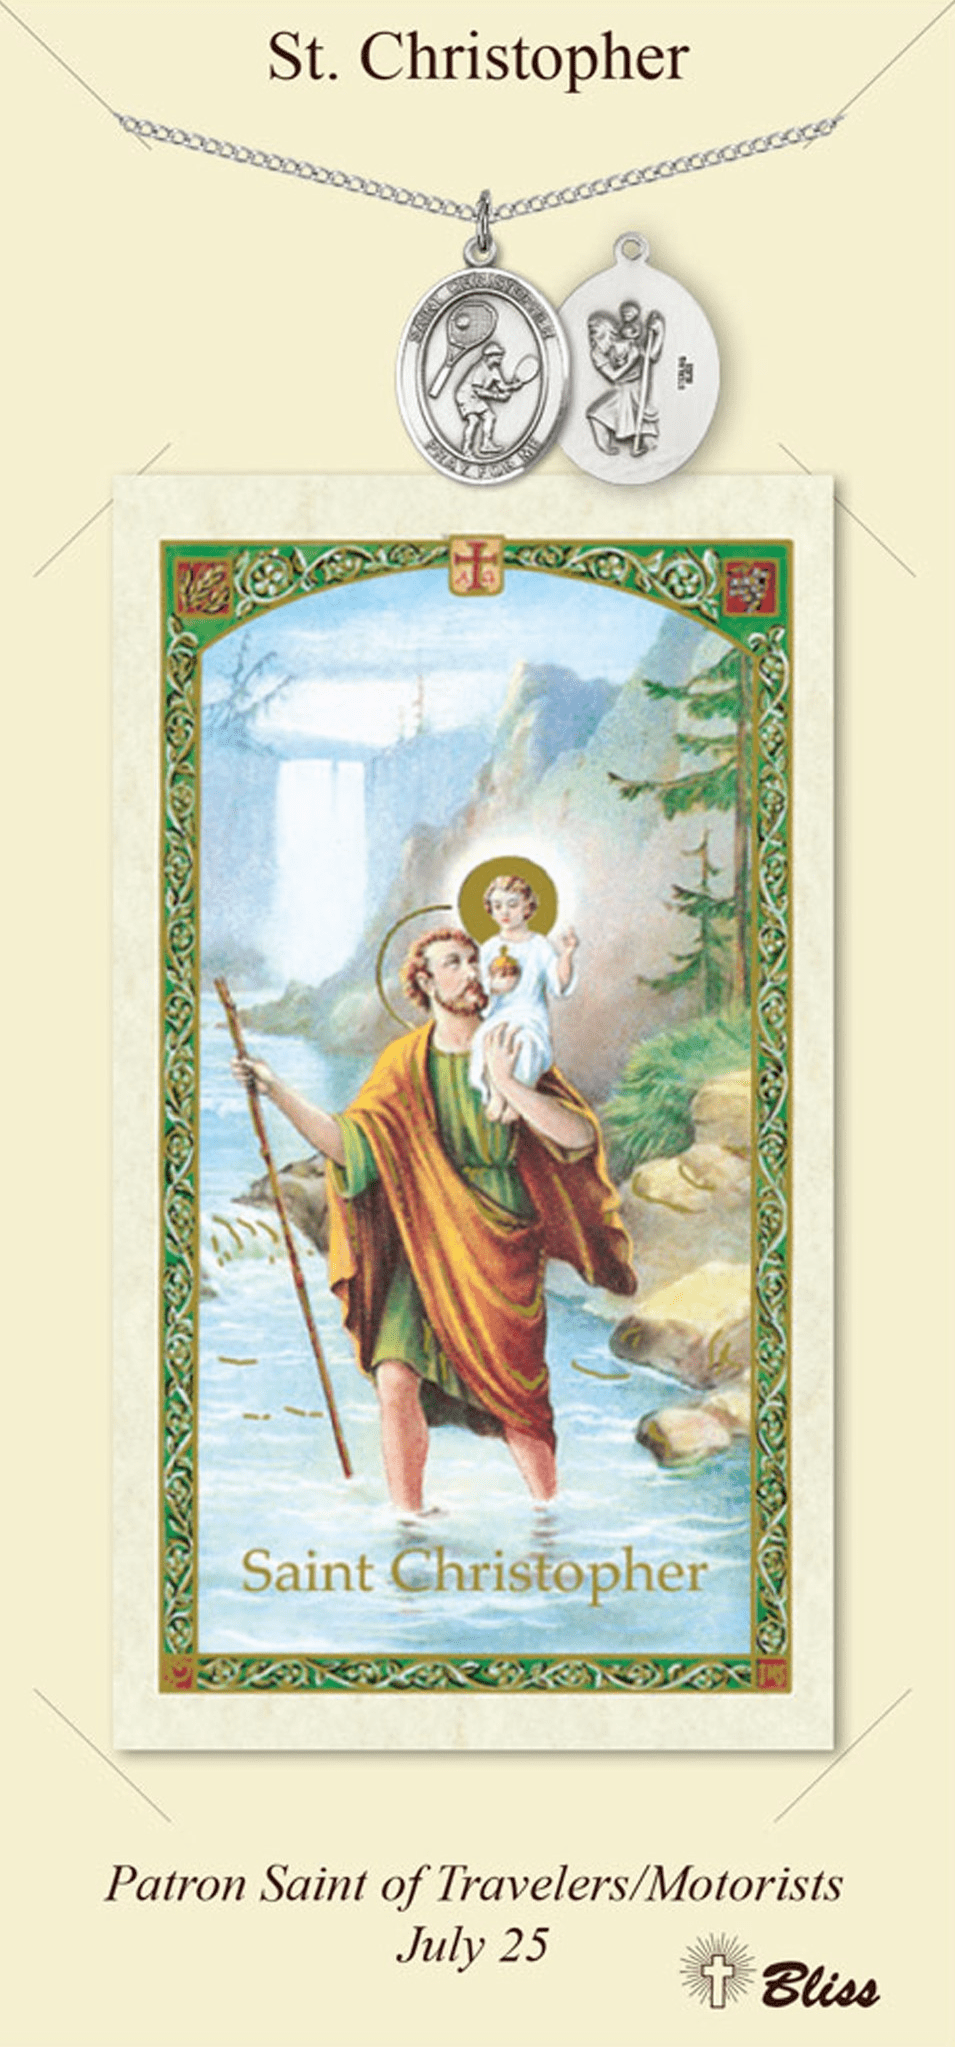 St Christopher Tennis Prayer Card and Pewter Pendant Necklace Gift Set